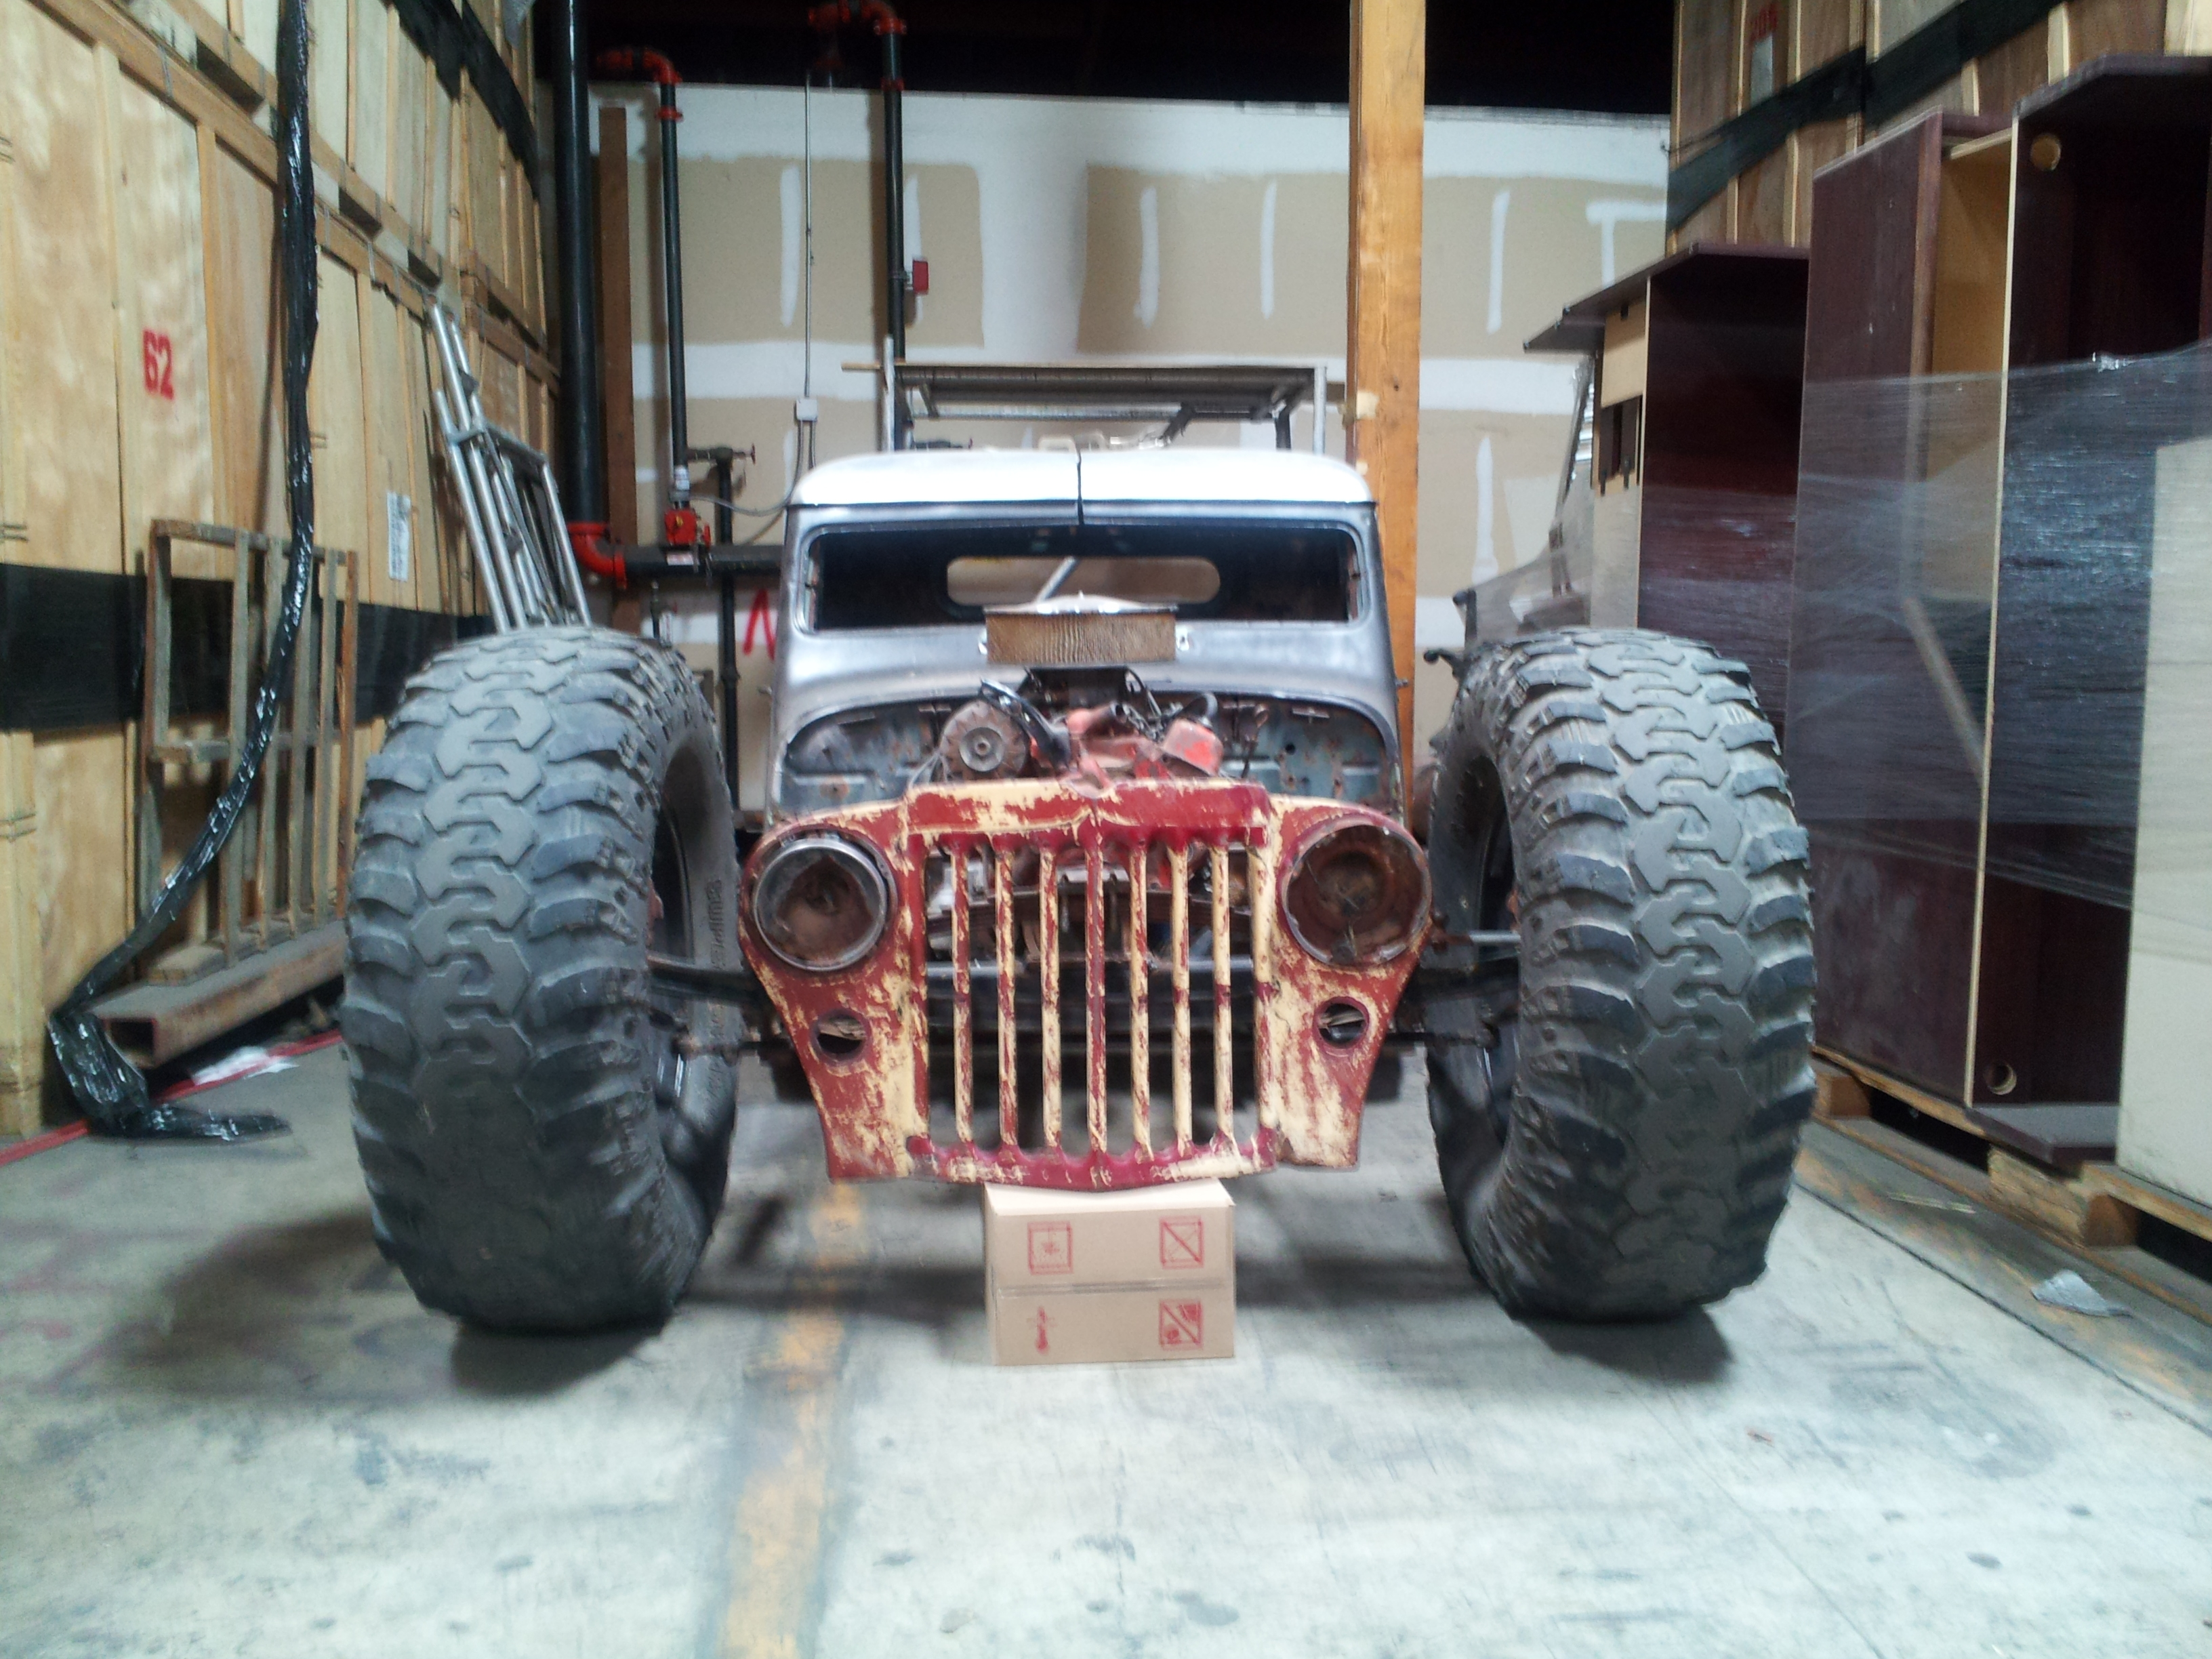 Nissan Ser1993 1952 Willys Pickup Specs Photos Modification Info 1954 Chevy Chopped And Bagged Rat Rod